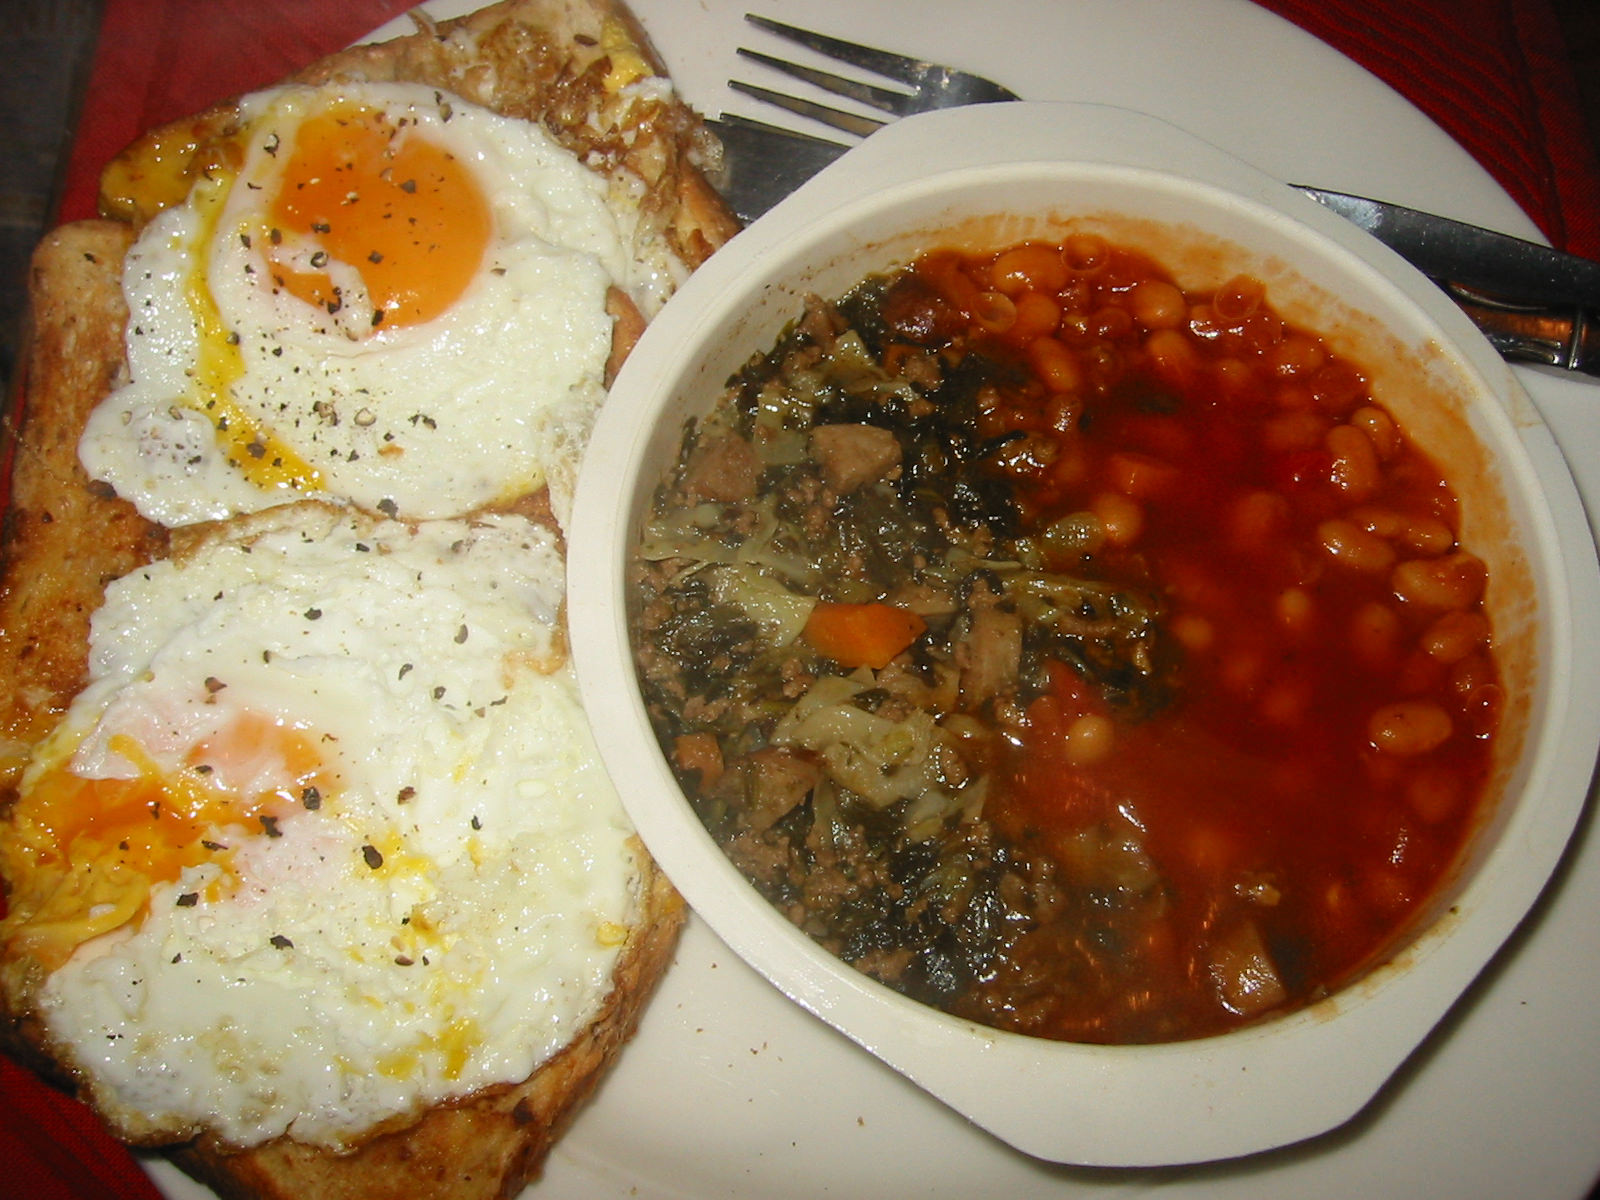 Eggs on toast, savoury mince and baked beans